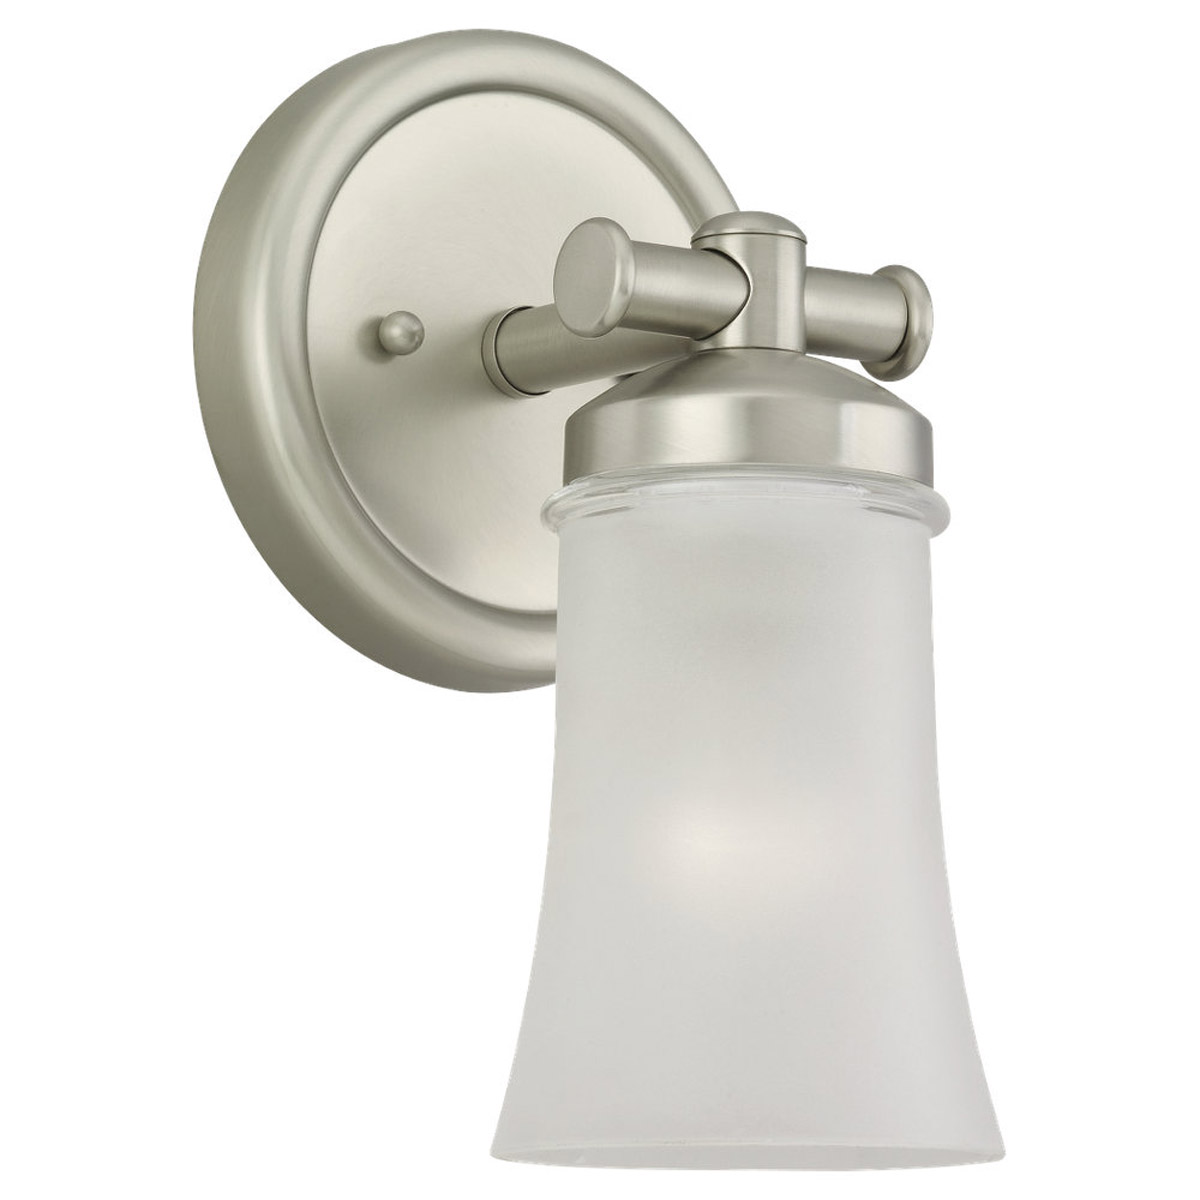 Sea Gull Lighting Newport 1 Light Bath Vanity in Antique Brushed Nickel 44482-965 photo